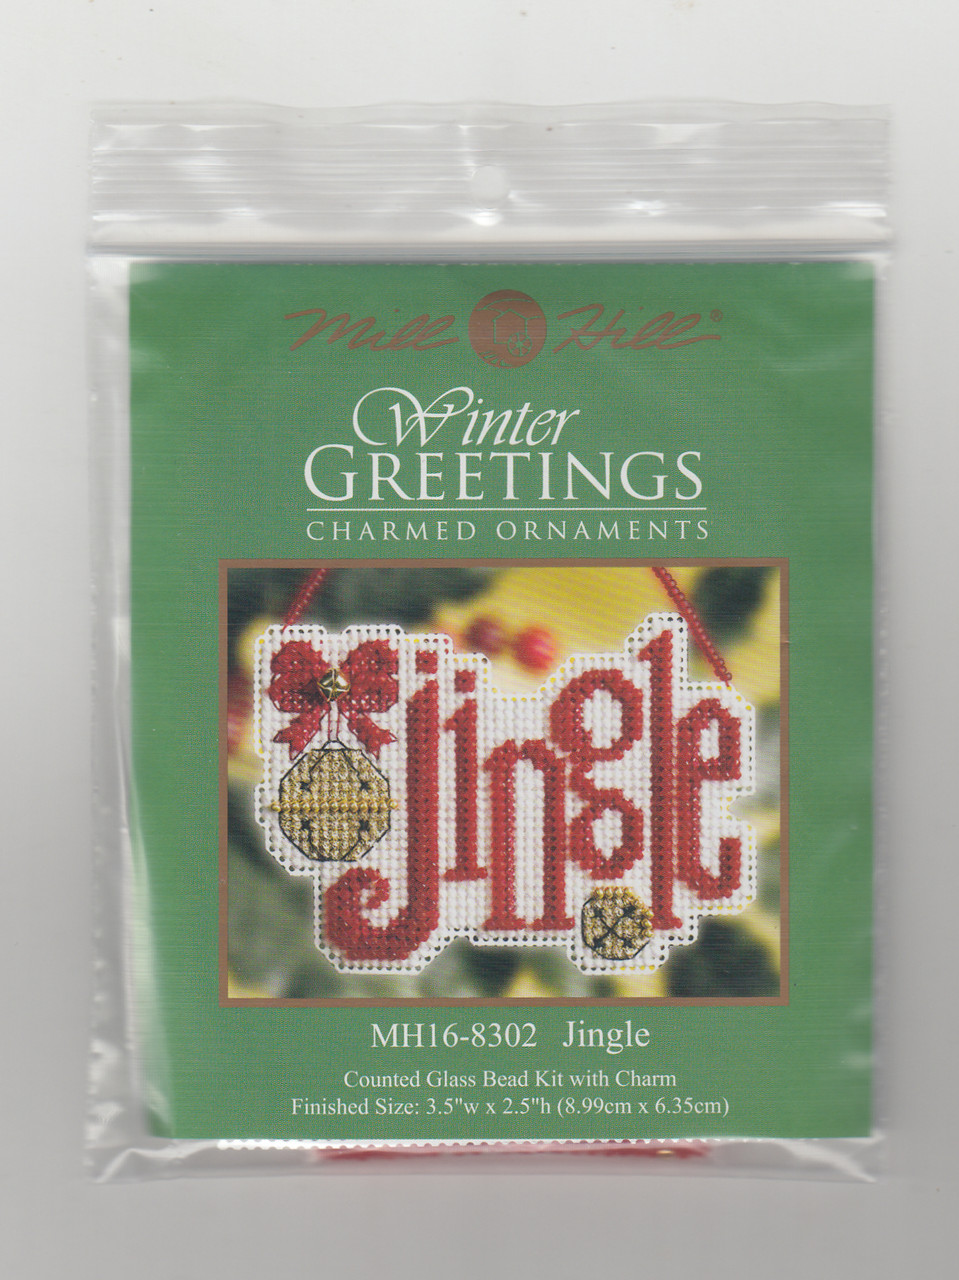 Mill Hill 2008 Winter Greetings Charmed Ornament - Jingle